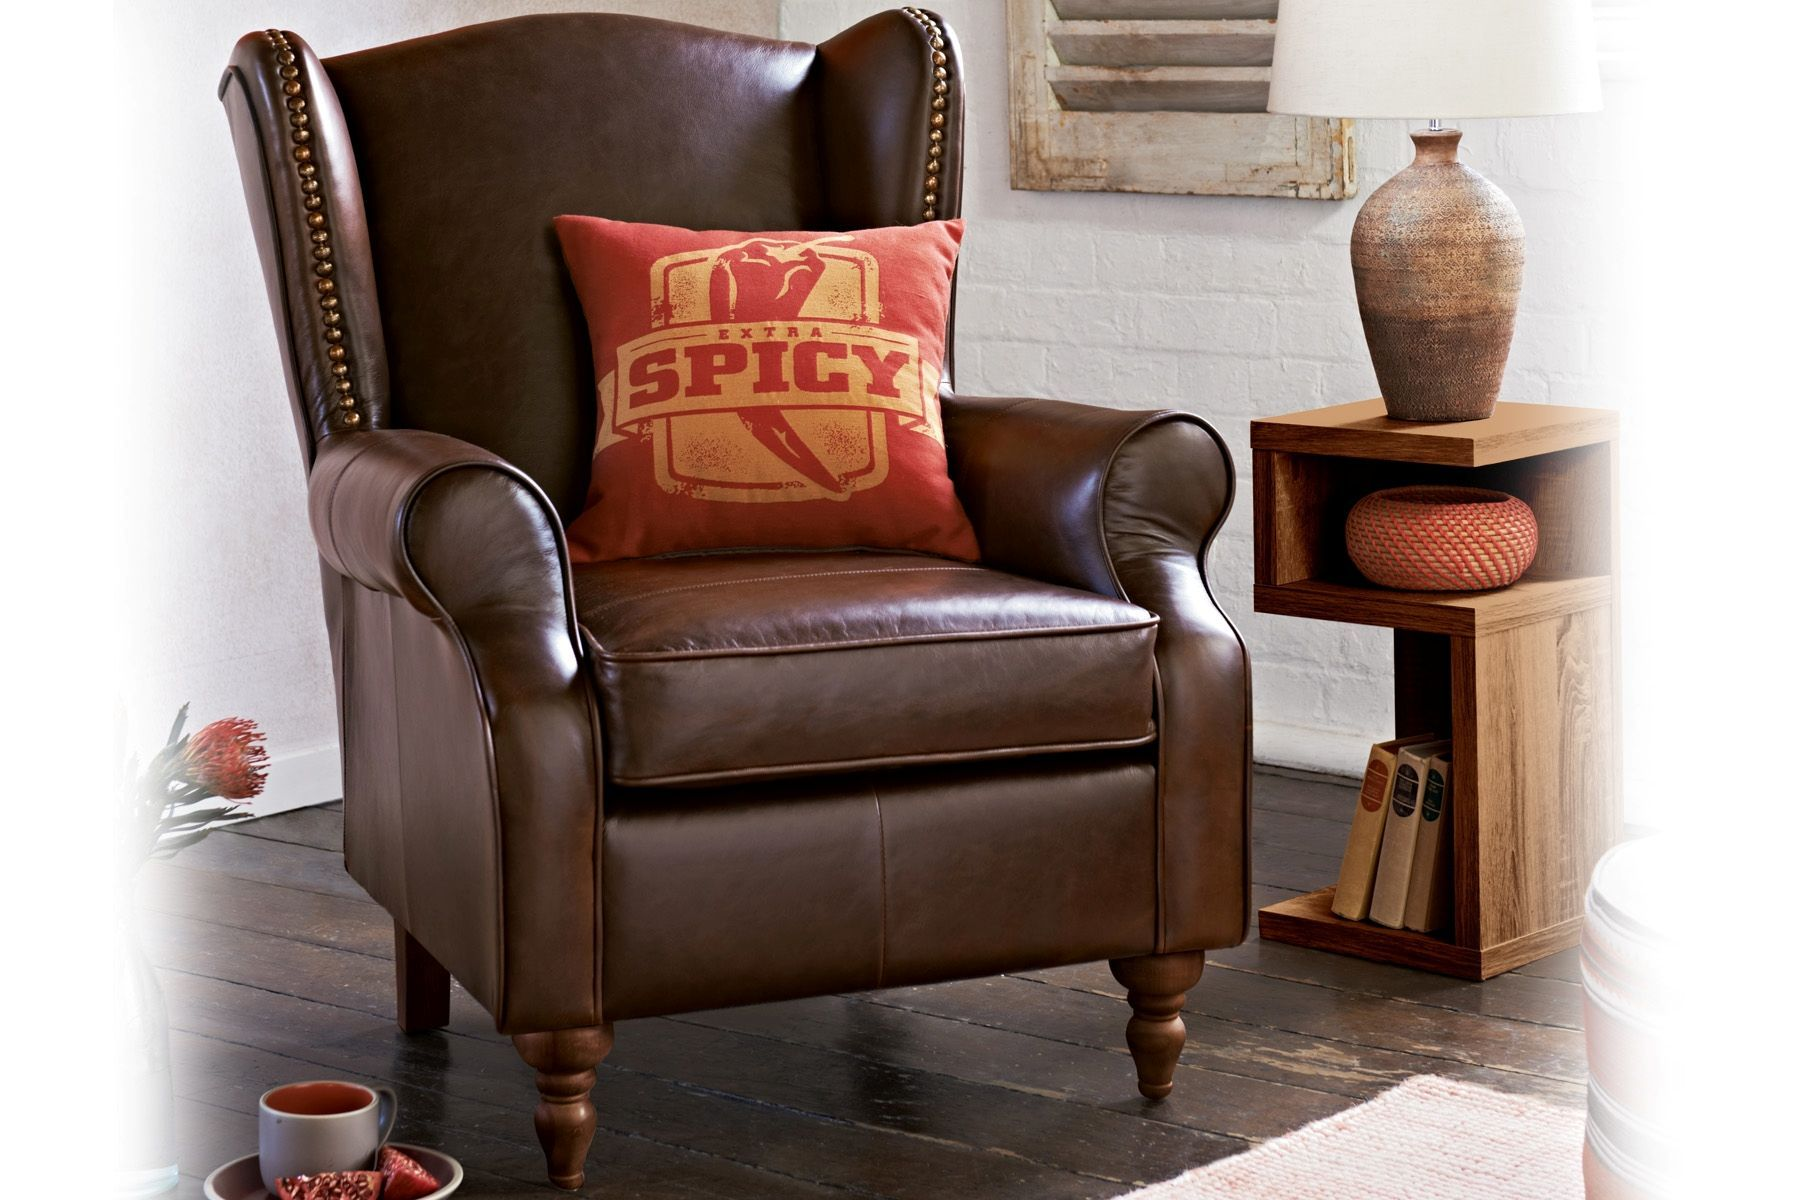 Image Result For Buy Leather Sofa Leather Couch Leather Armchairs Online